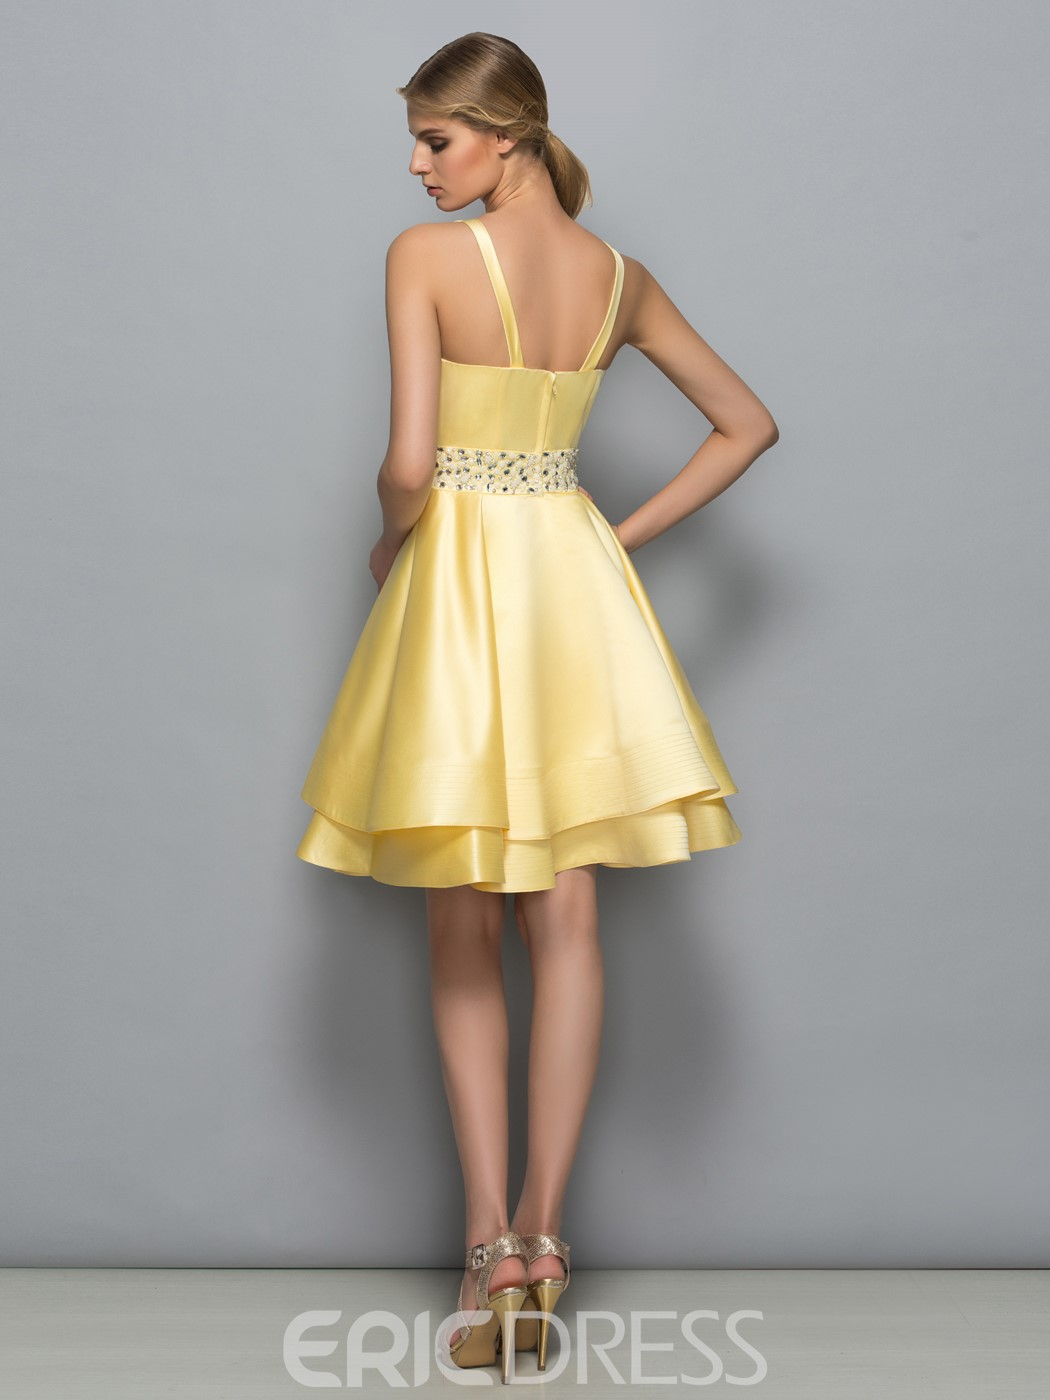 Ericdress Scoop Neck Beading Tiered Short Cocktail Dress